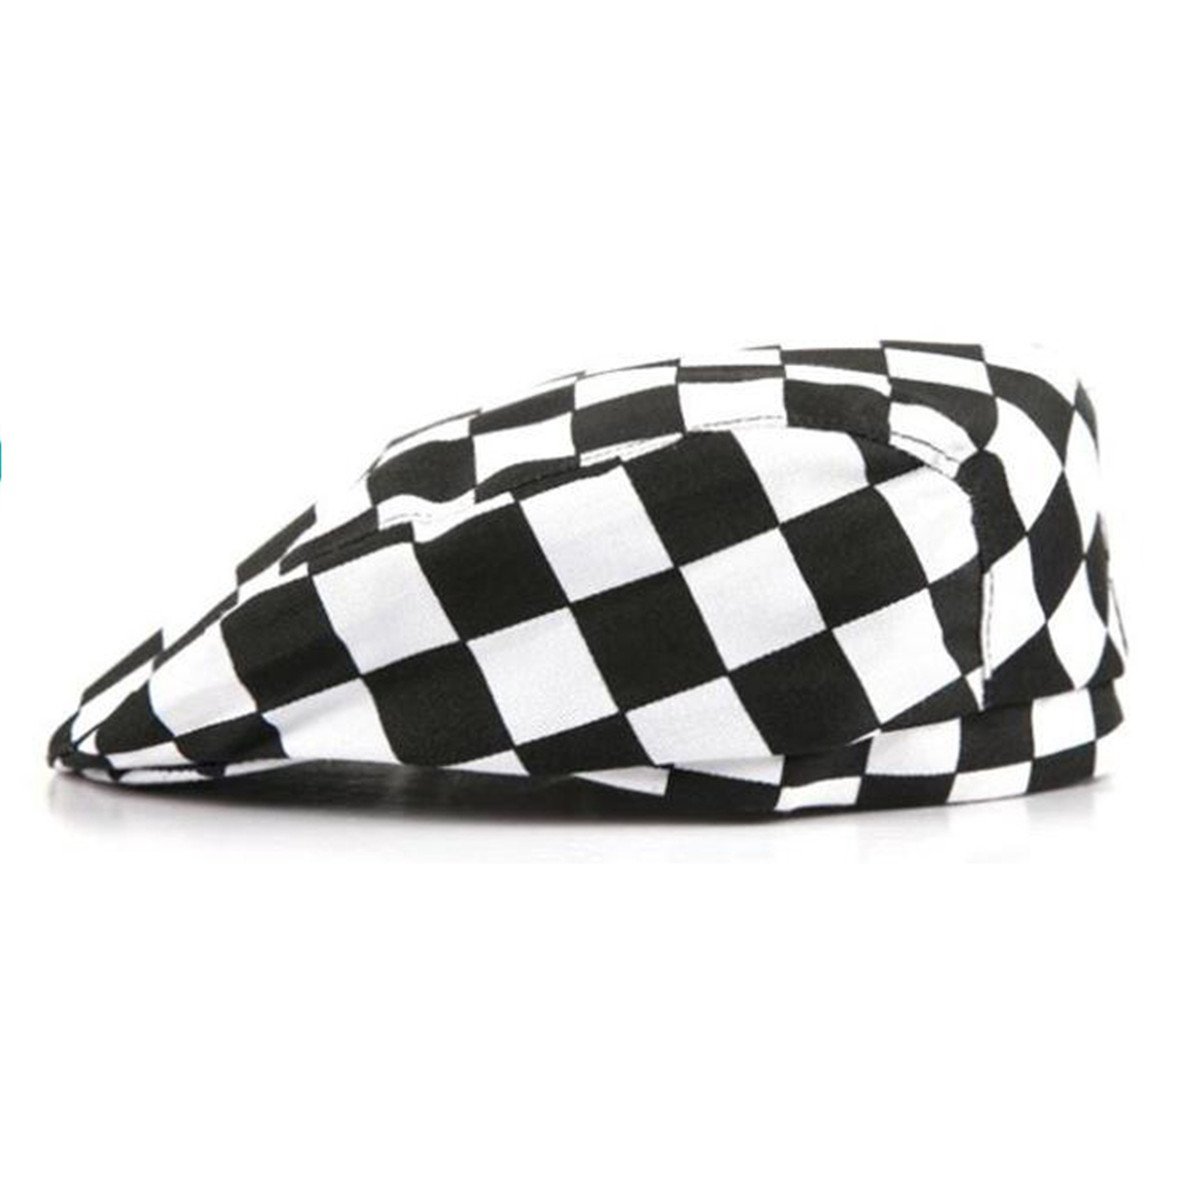 XINFU Chef Work Unisex Adult Printing Chef Hat Beret Party Accessory by XINFU